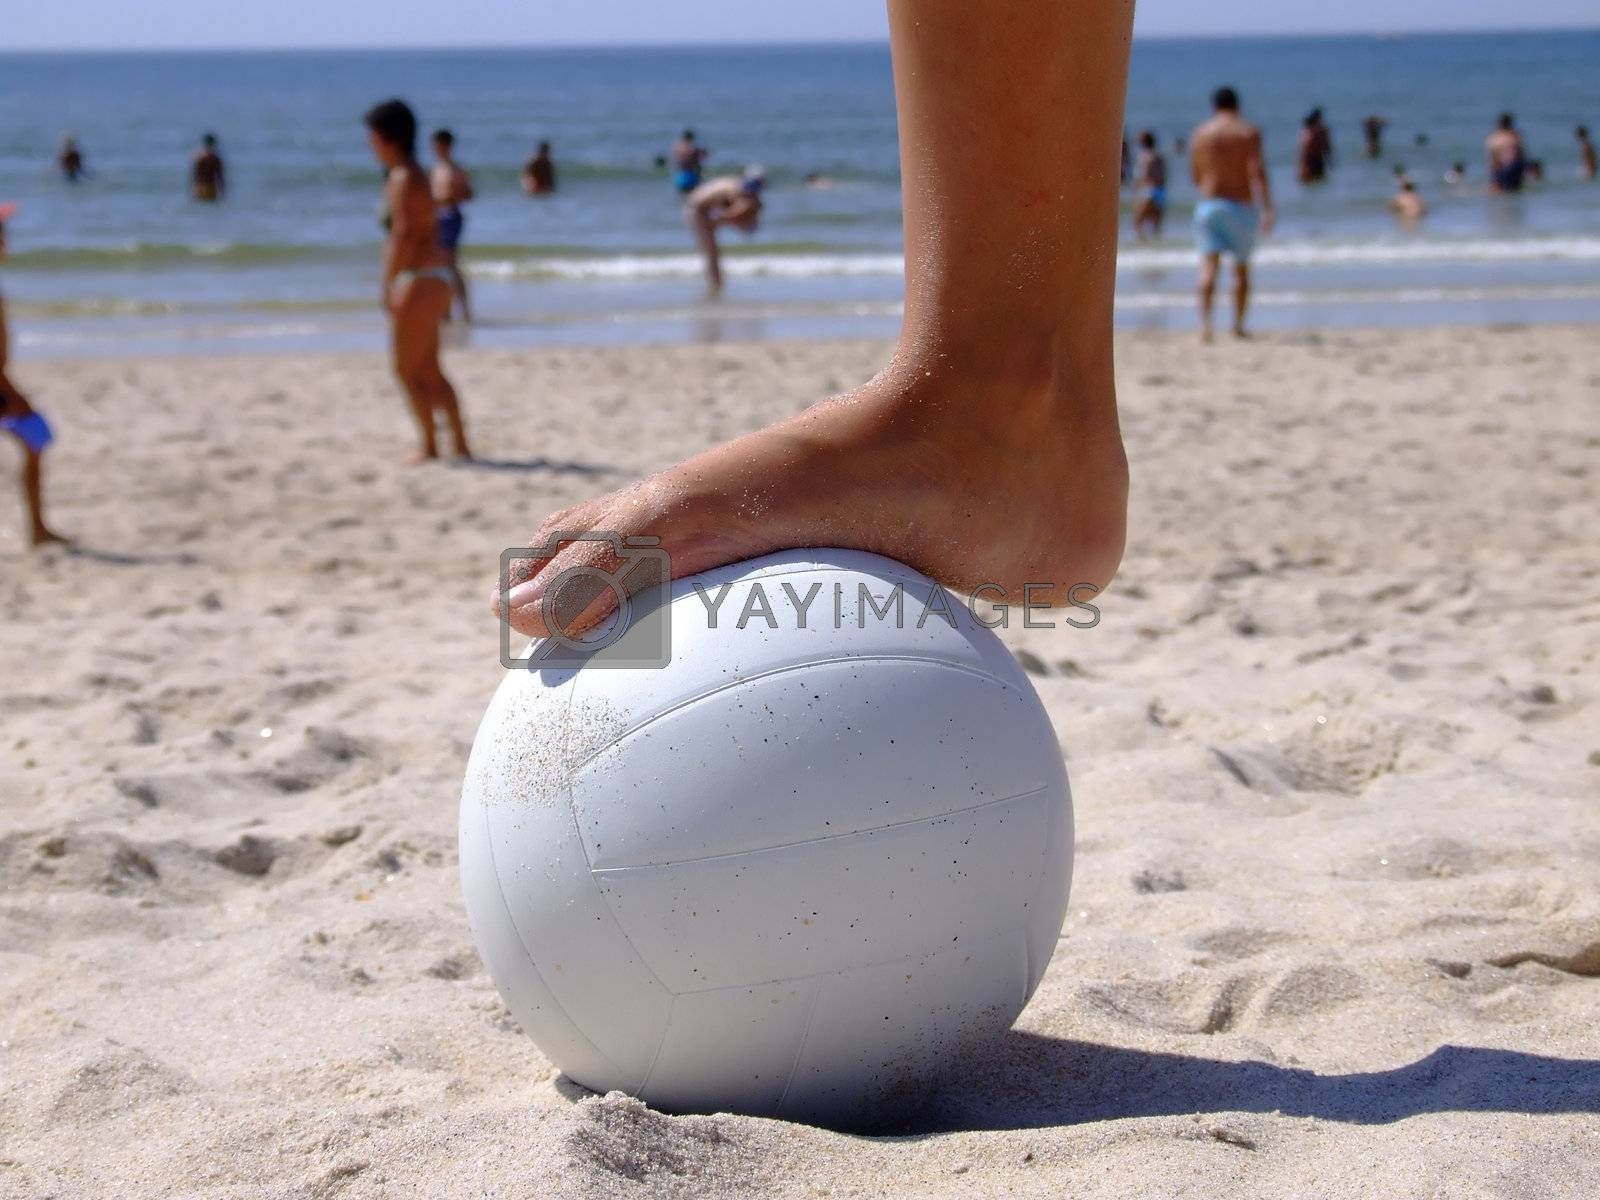 Foot on the volleyball  by PauloResende